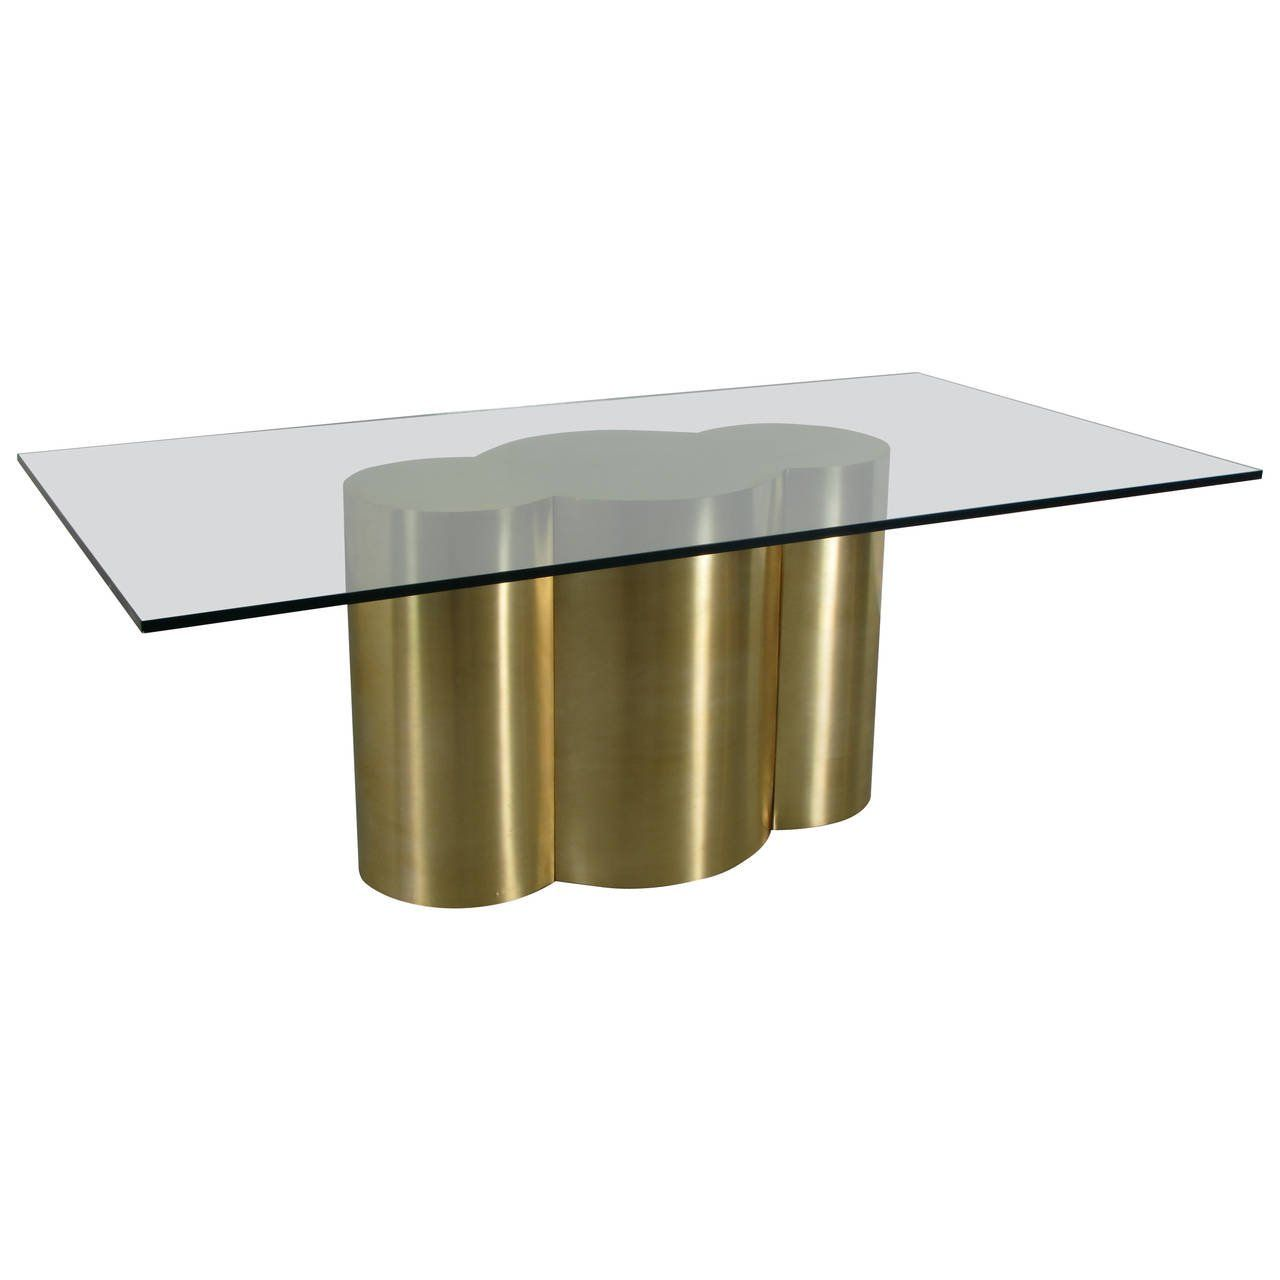 Custom Quatrefoil Dining Table Base In Polished Brass By Refine